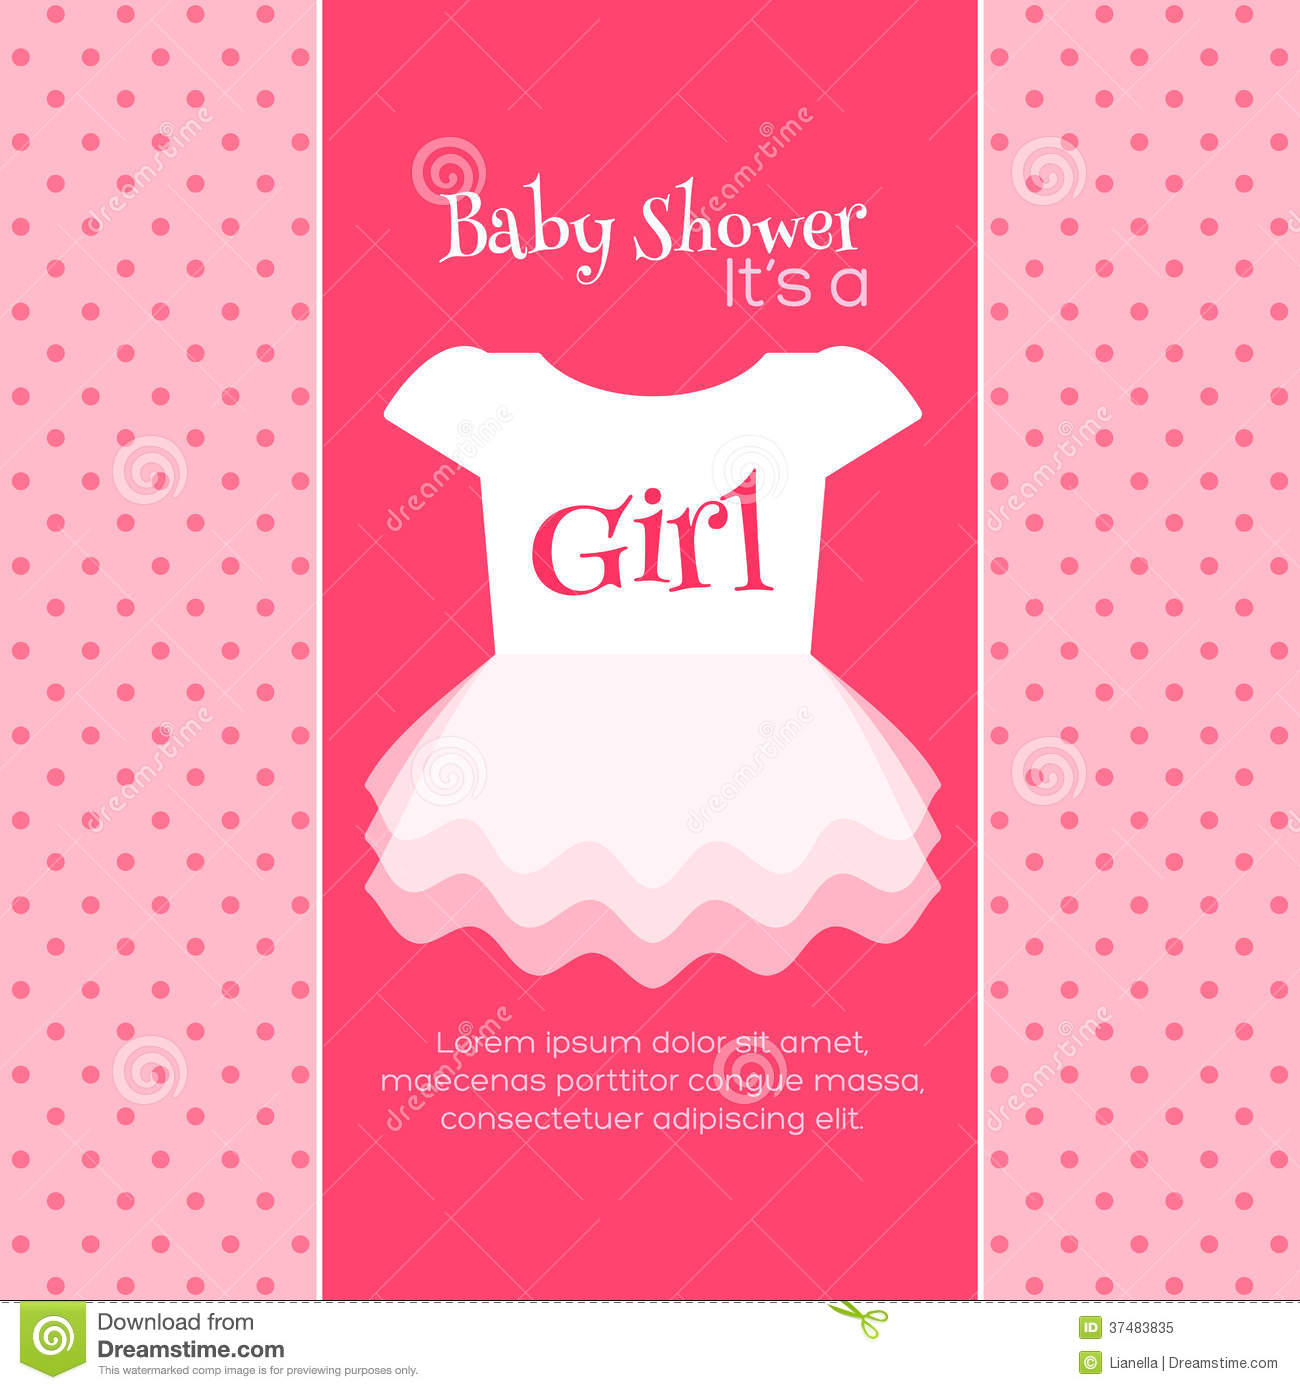 Baby Shower Invitation Template. Royalty Free Stock Photo  Free Downloadable Baby Shower Invitations Templates